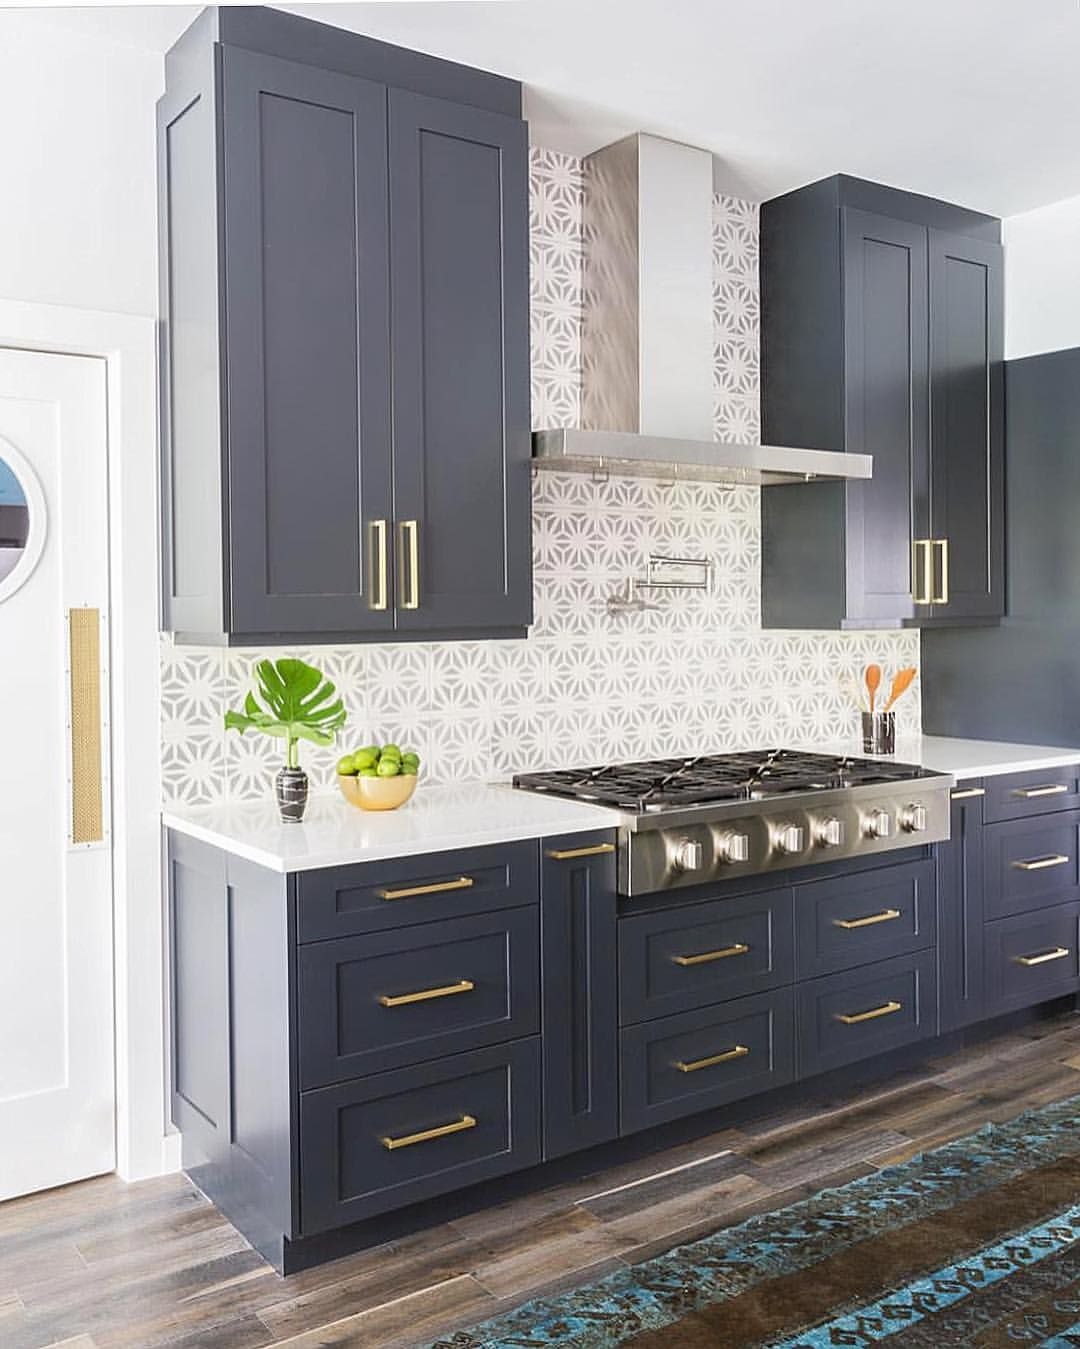 Navy Blue Cabinets Stone Textiles Kitchen Kitchen Design New Kitchen Cabinets Kitchen Renovation